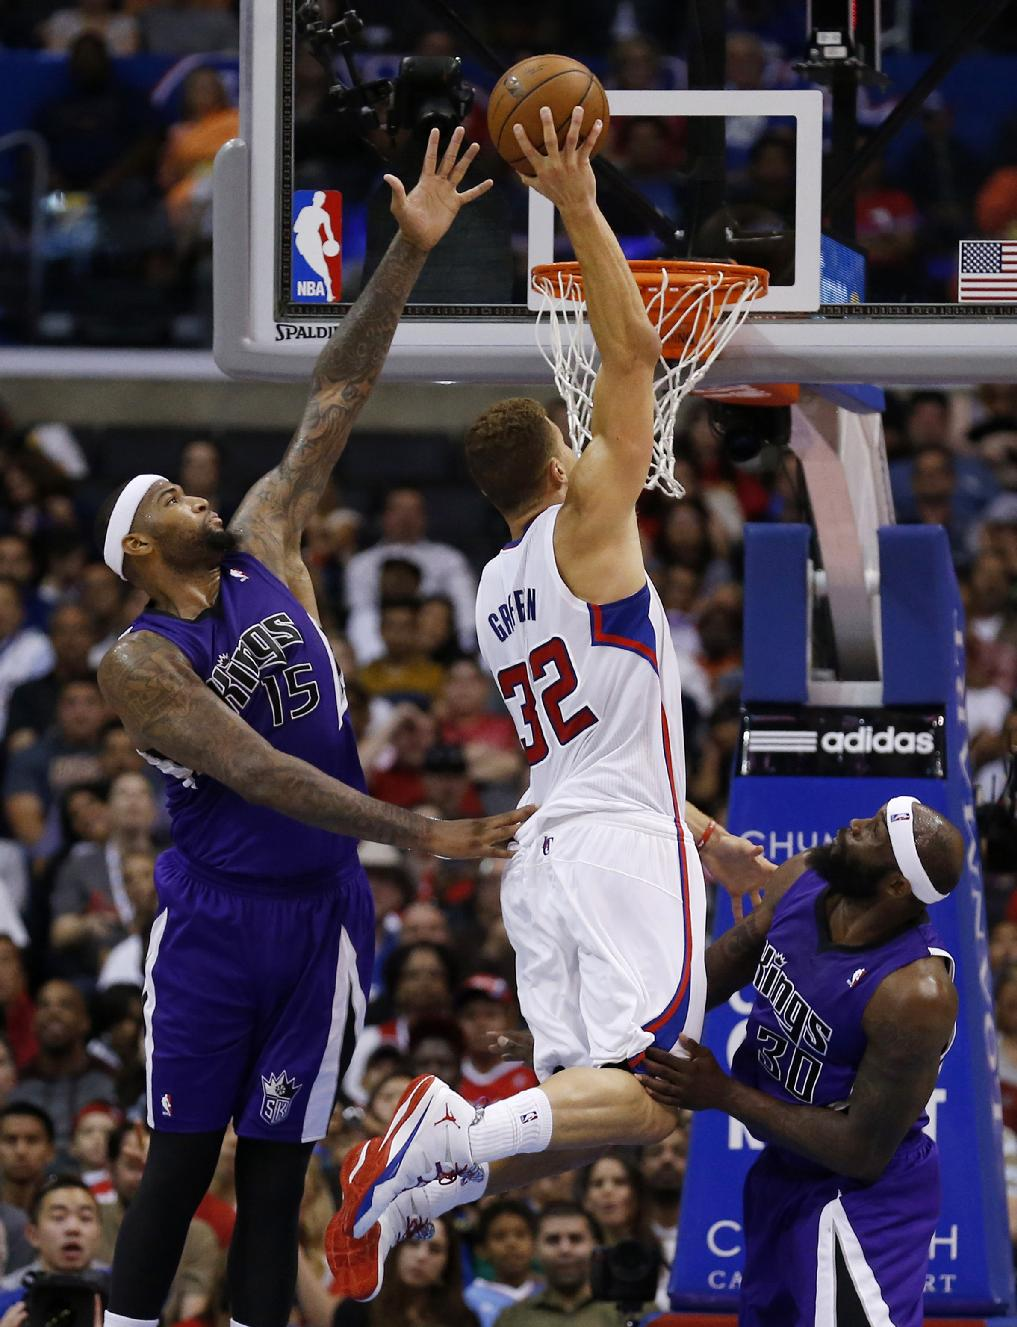 Los Angeles Clippers forward Blake Griffin, center, dunks the ball past Sacramento Kings center DeMarcus Cousins, left, and Kings forward Reggie Evans, right, during the second half of an NBA basketball game in Los Angeles, Saturday, April 12, 2014. The Clippers won 117-101